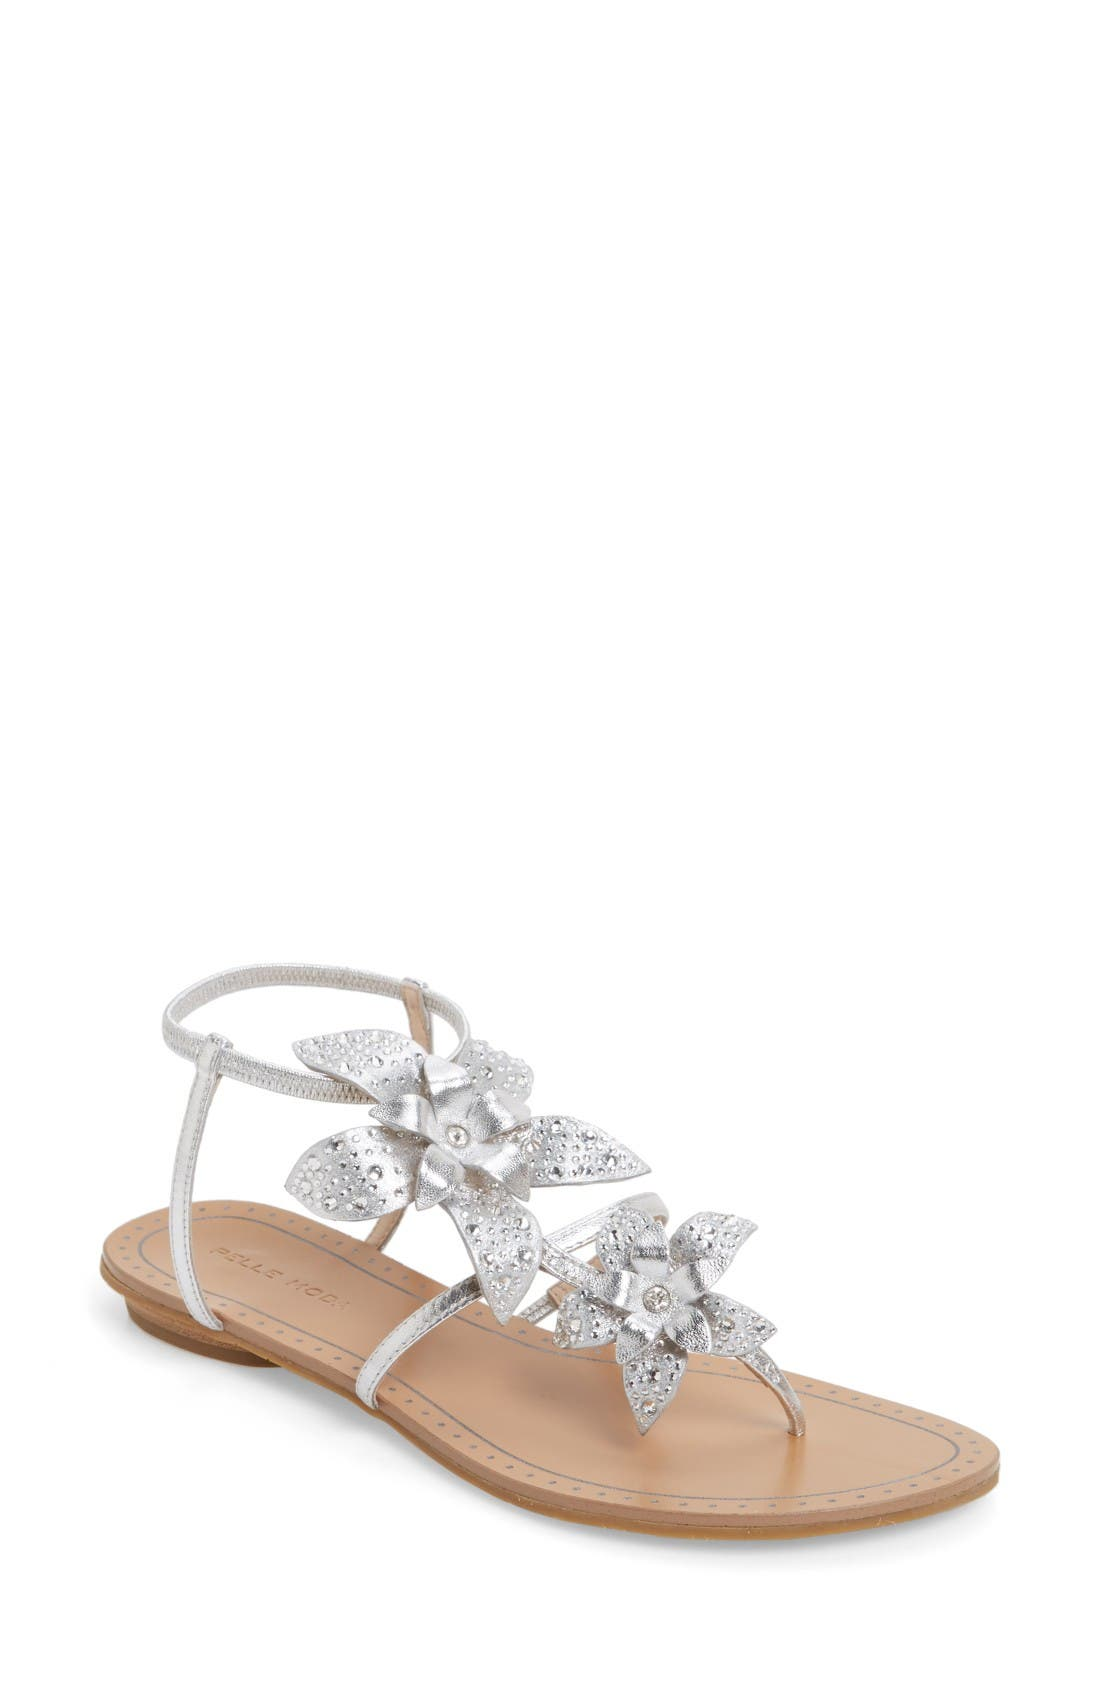 PELLE MODA Ellis Strappy Flowered Sandal